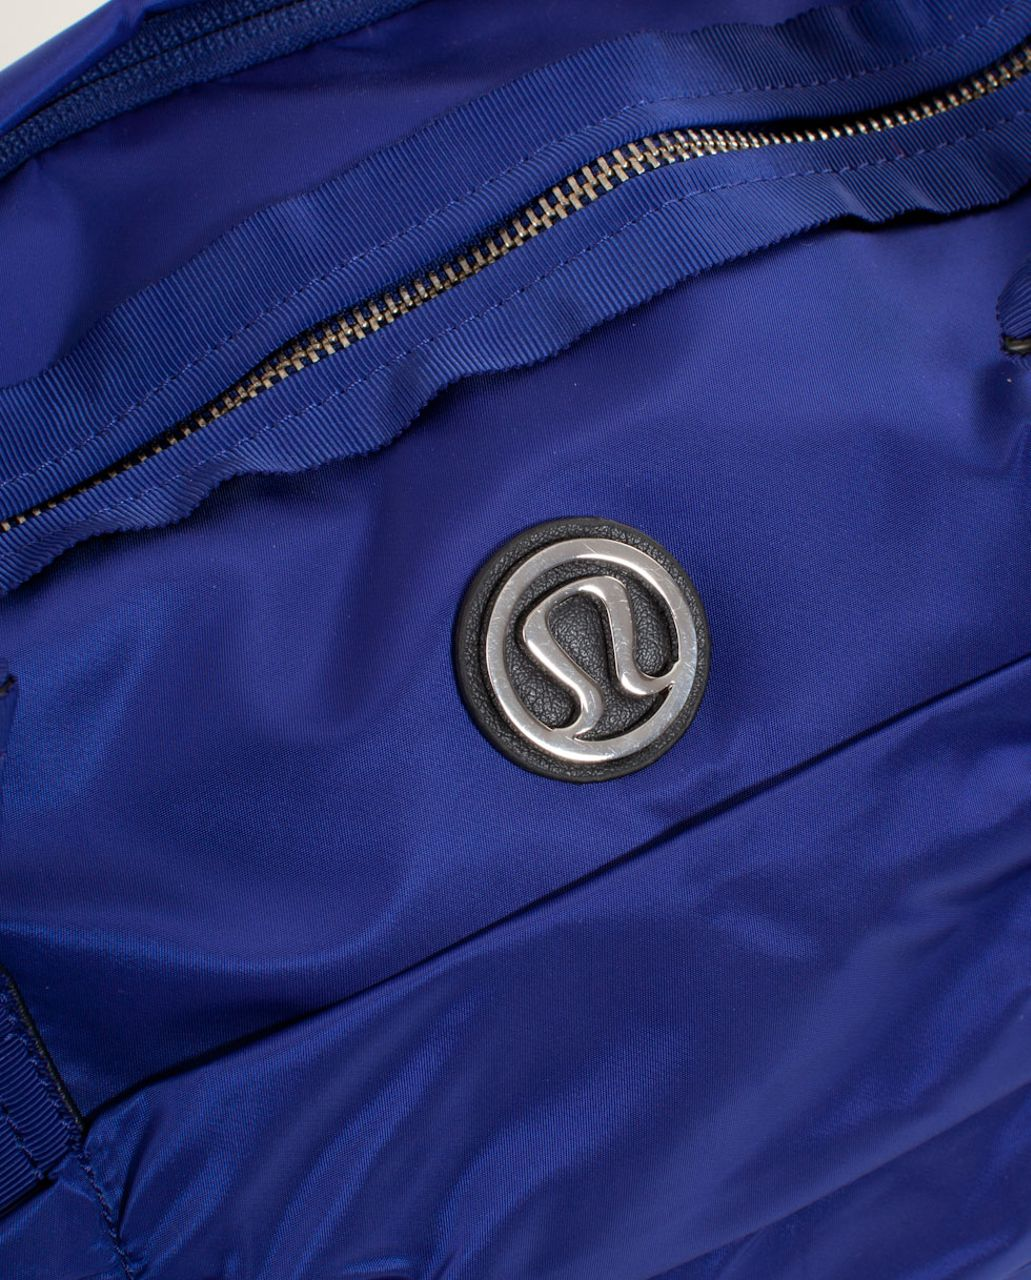 Lululemon Destined for Greatness Duffel - Pigment Blue